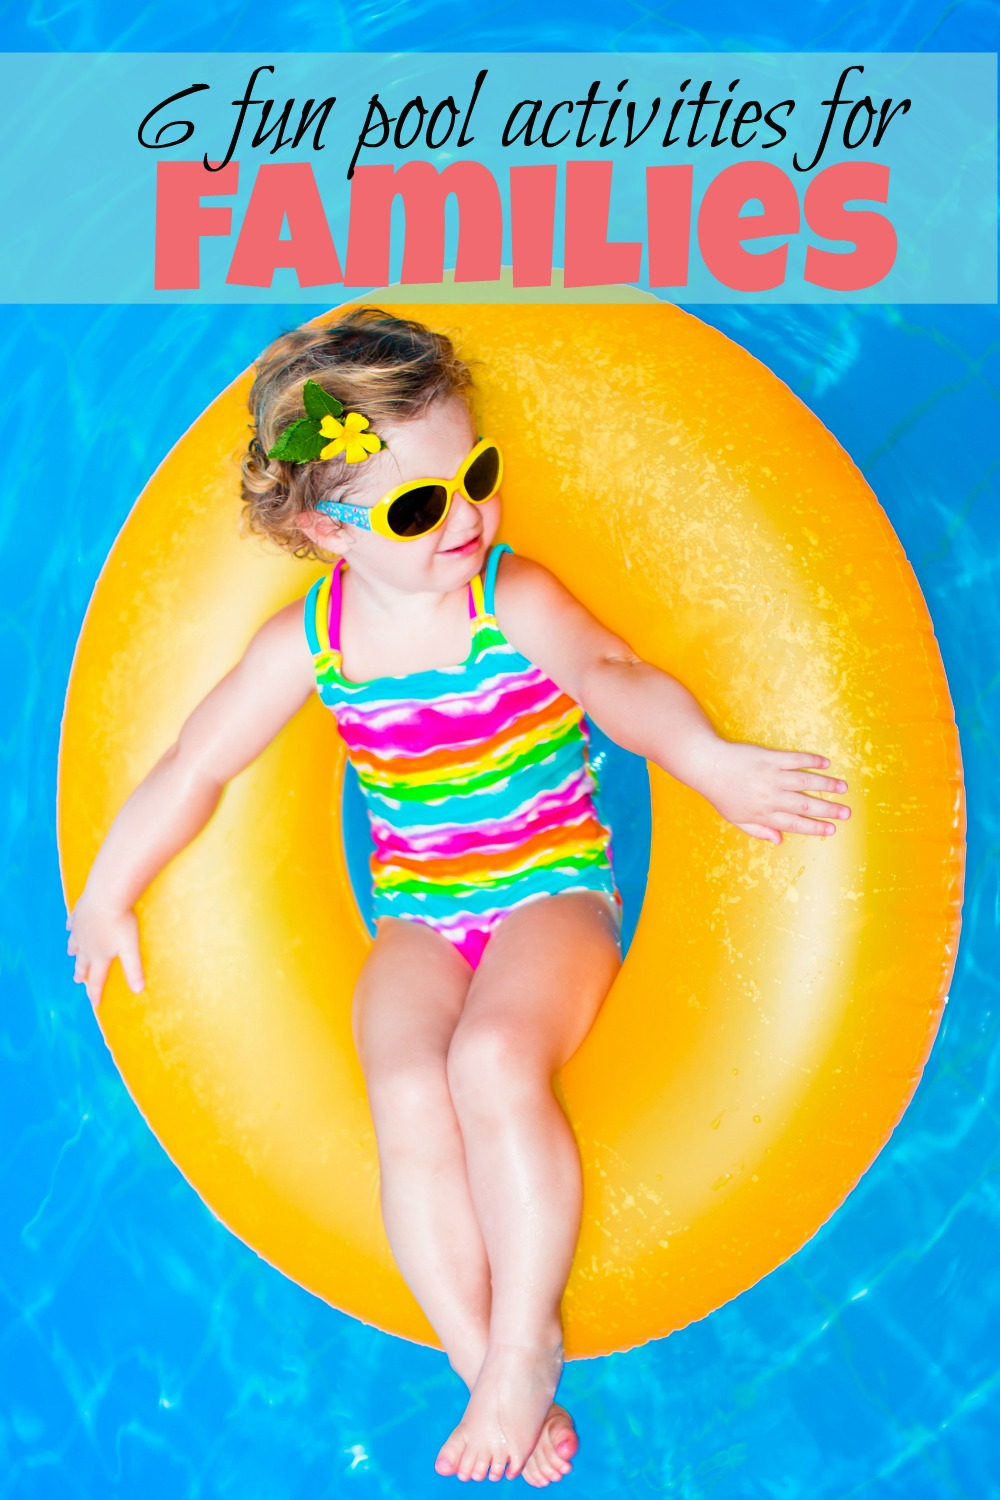 6 fun activities to try out with your family this summer as you enjoy the pool